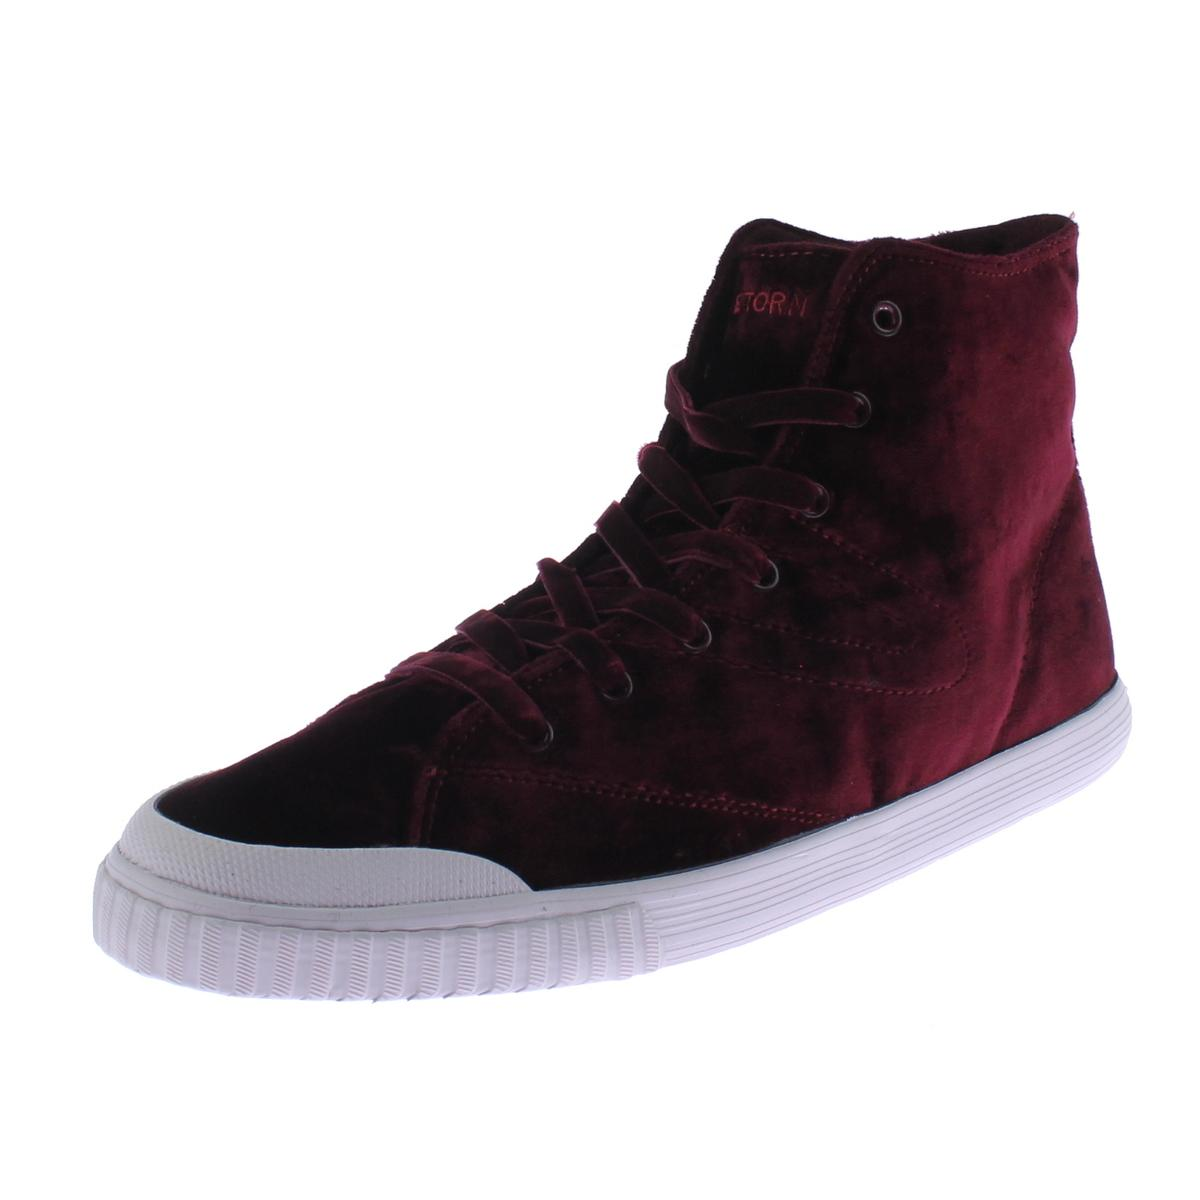 Tretorn Womens Marley 4 Velvet Casual Fashion Sneakers by Tretorn